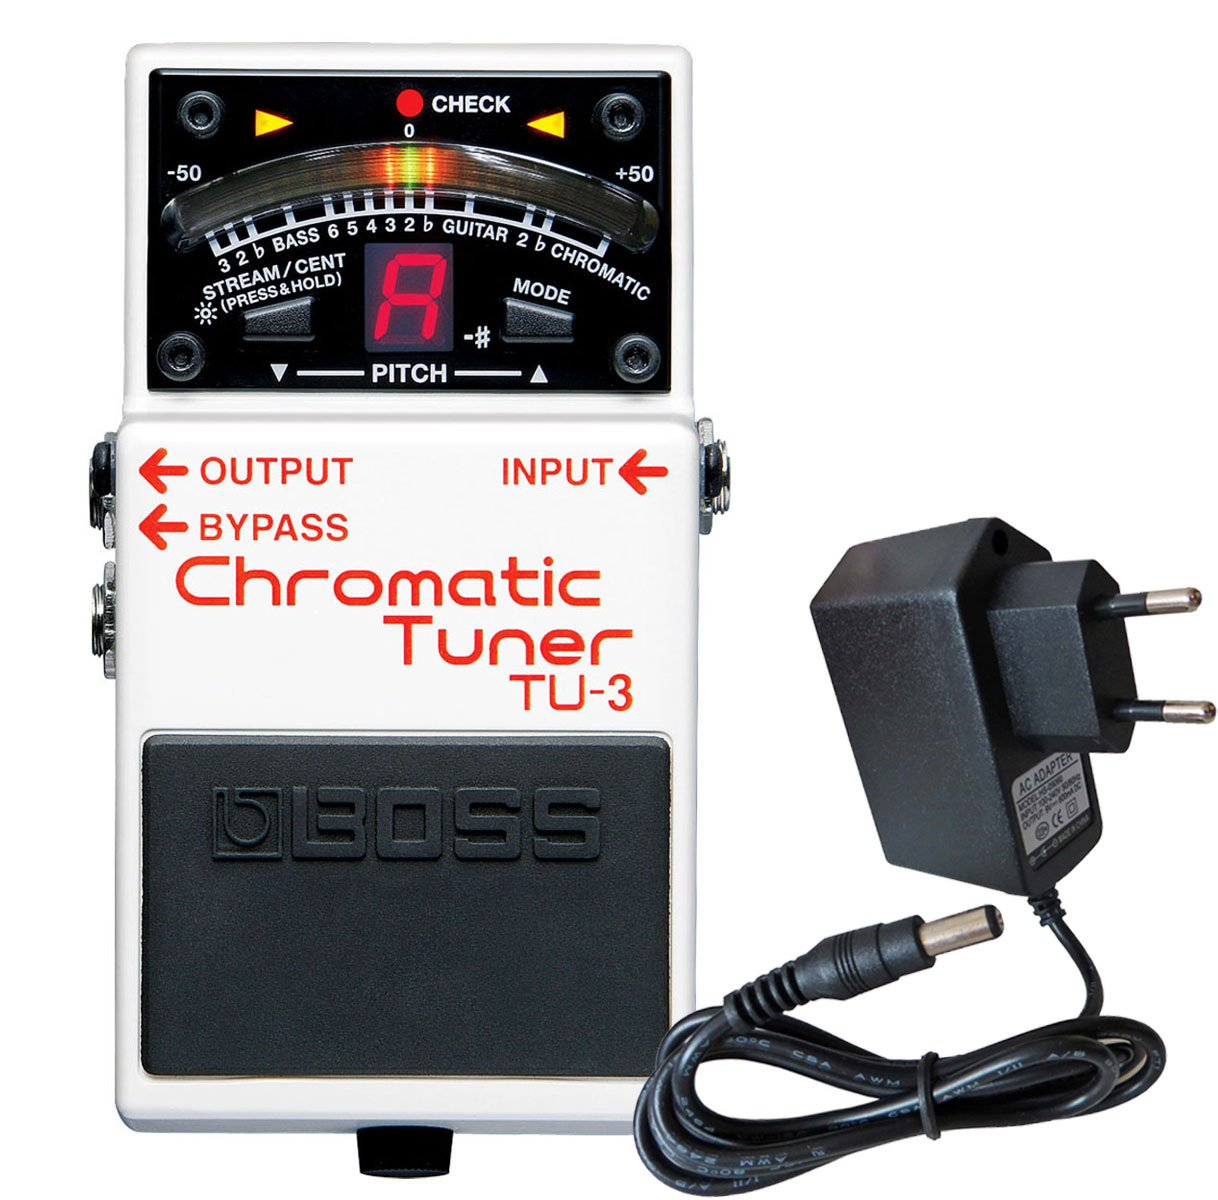 BOSS TU-3  Pé dale accordeur chromatique Tuner keepdrum 9  V Bloc d'alimentation Roland